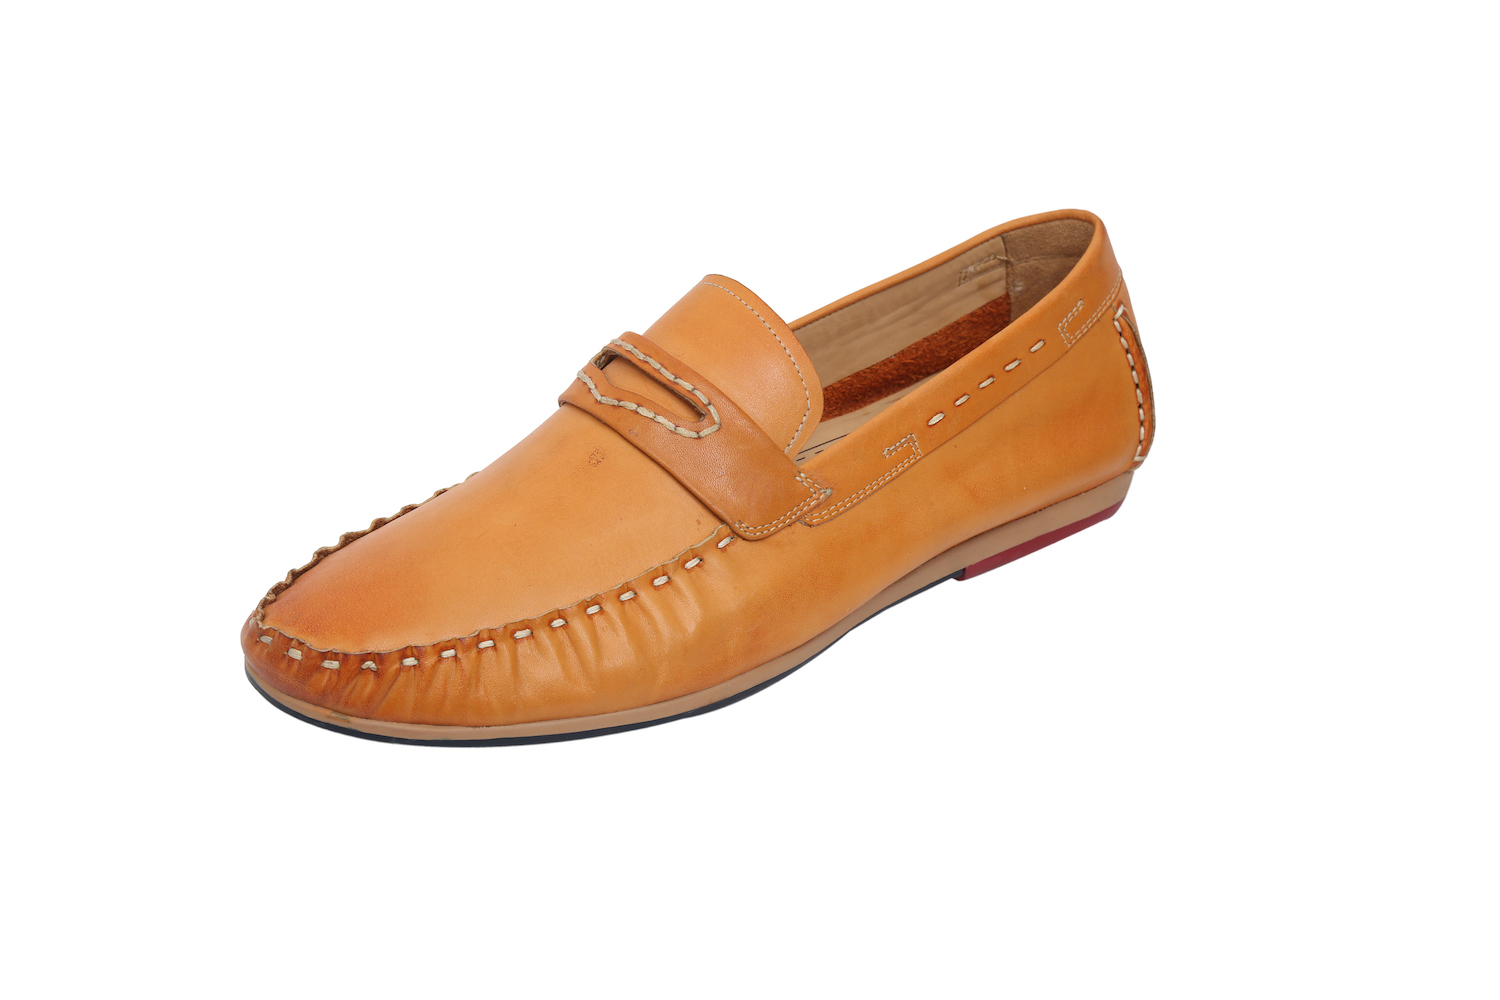 Brown Slip-On Moccasin Shoes